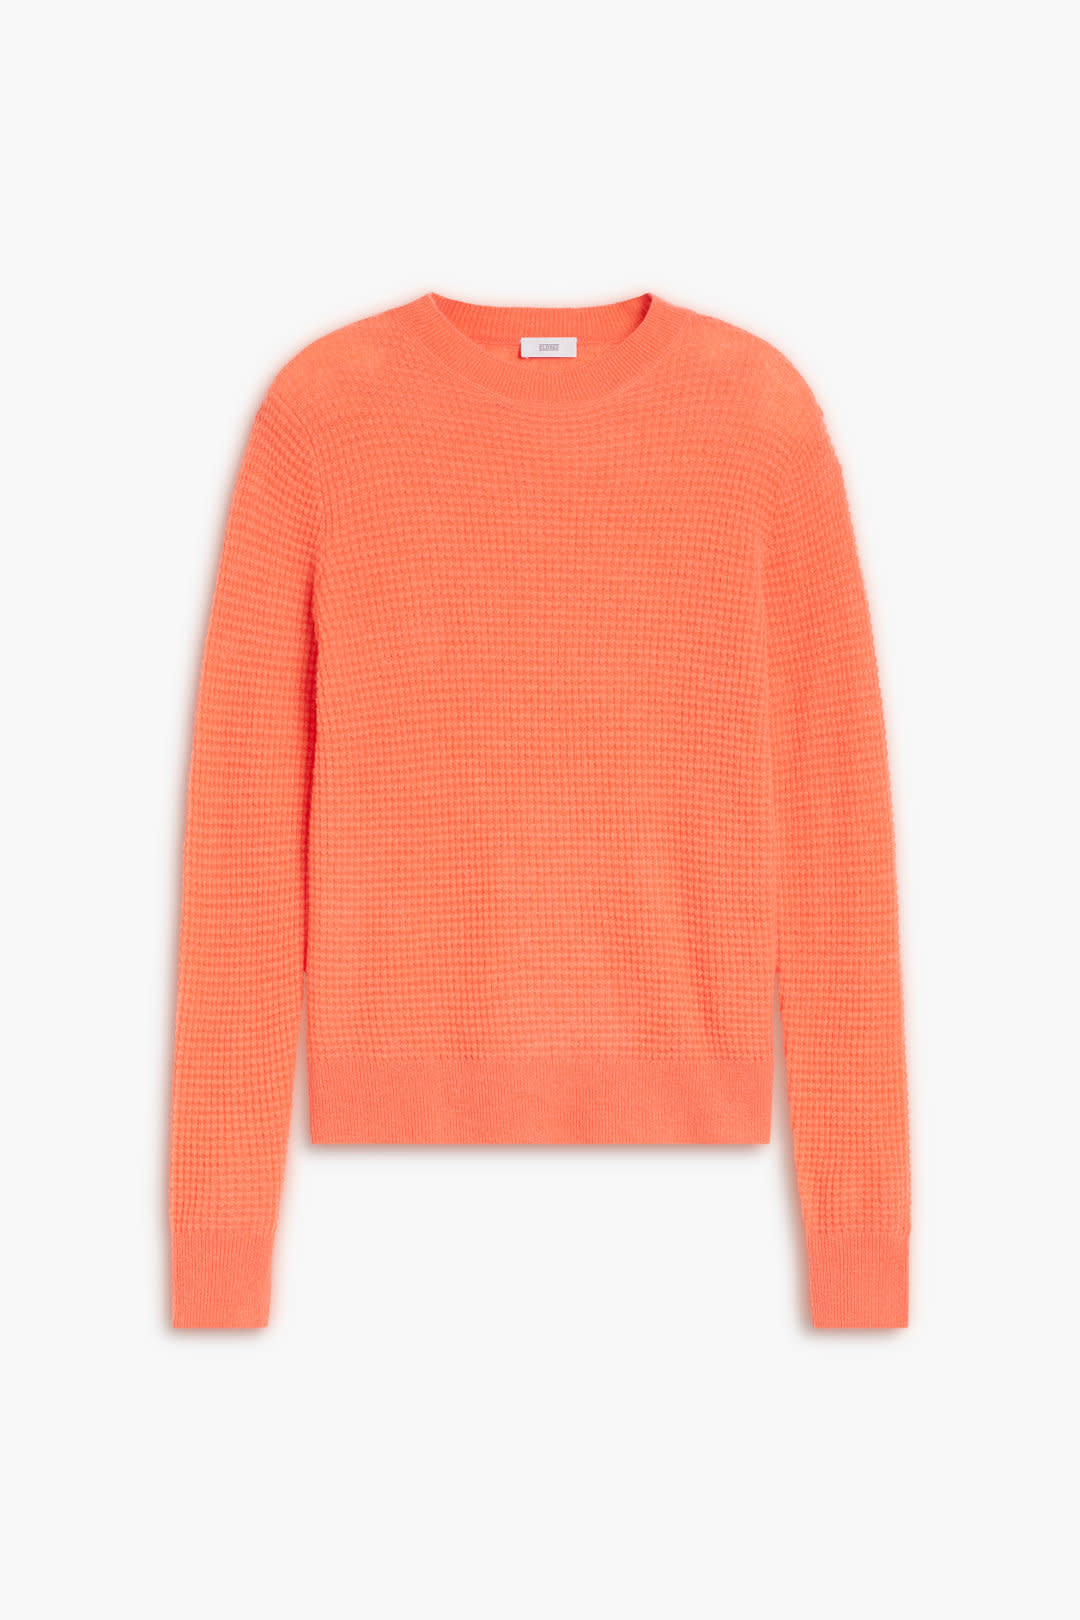 Knit strong coral-4